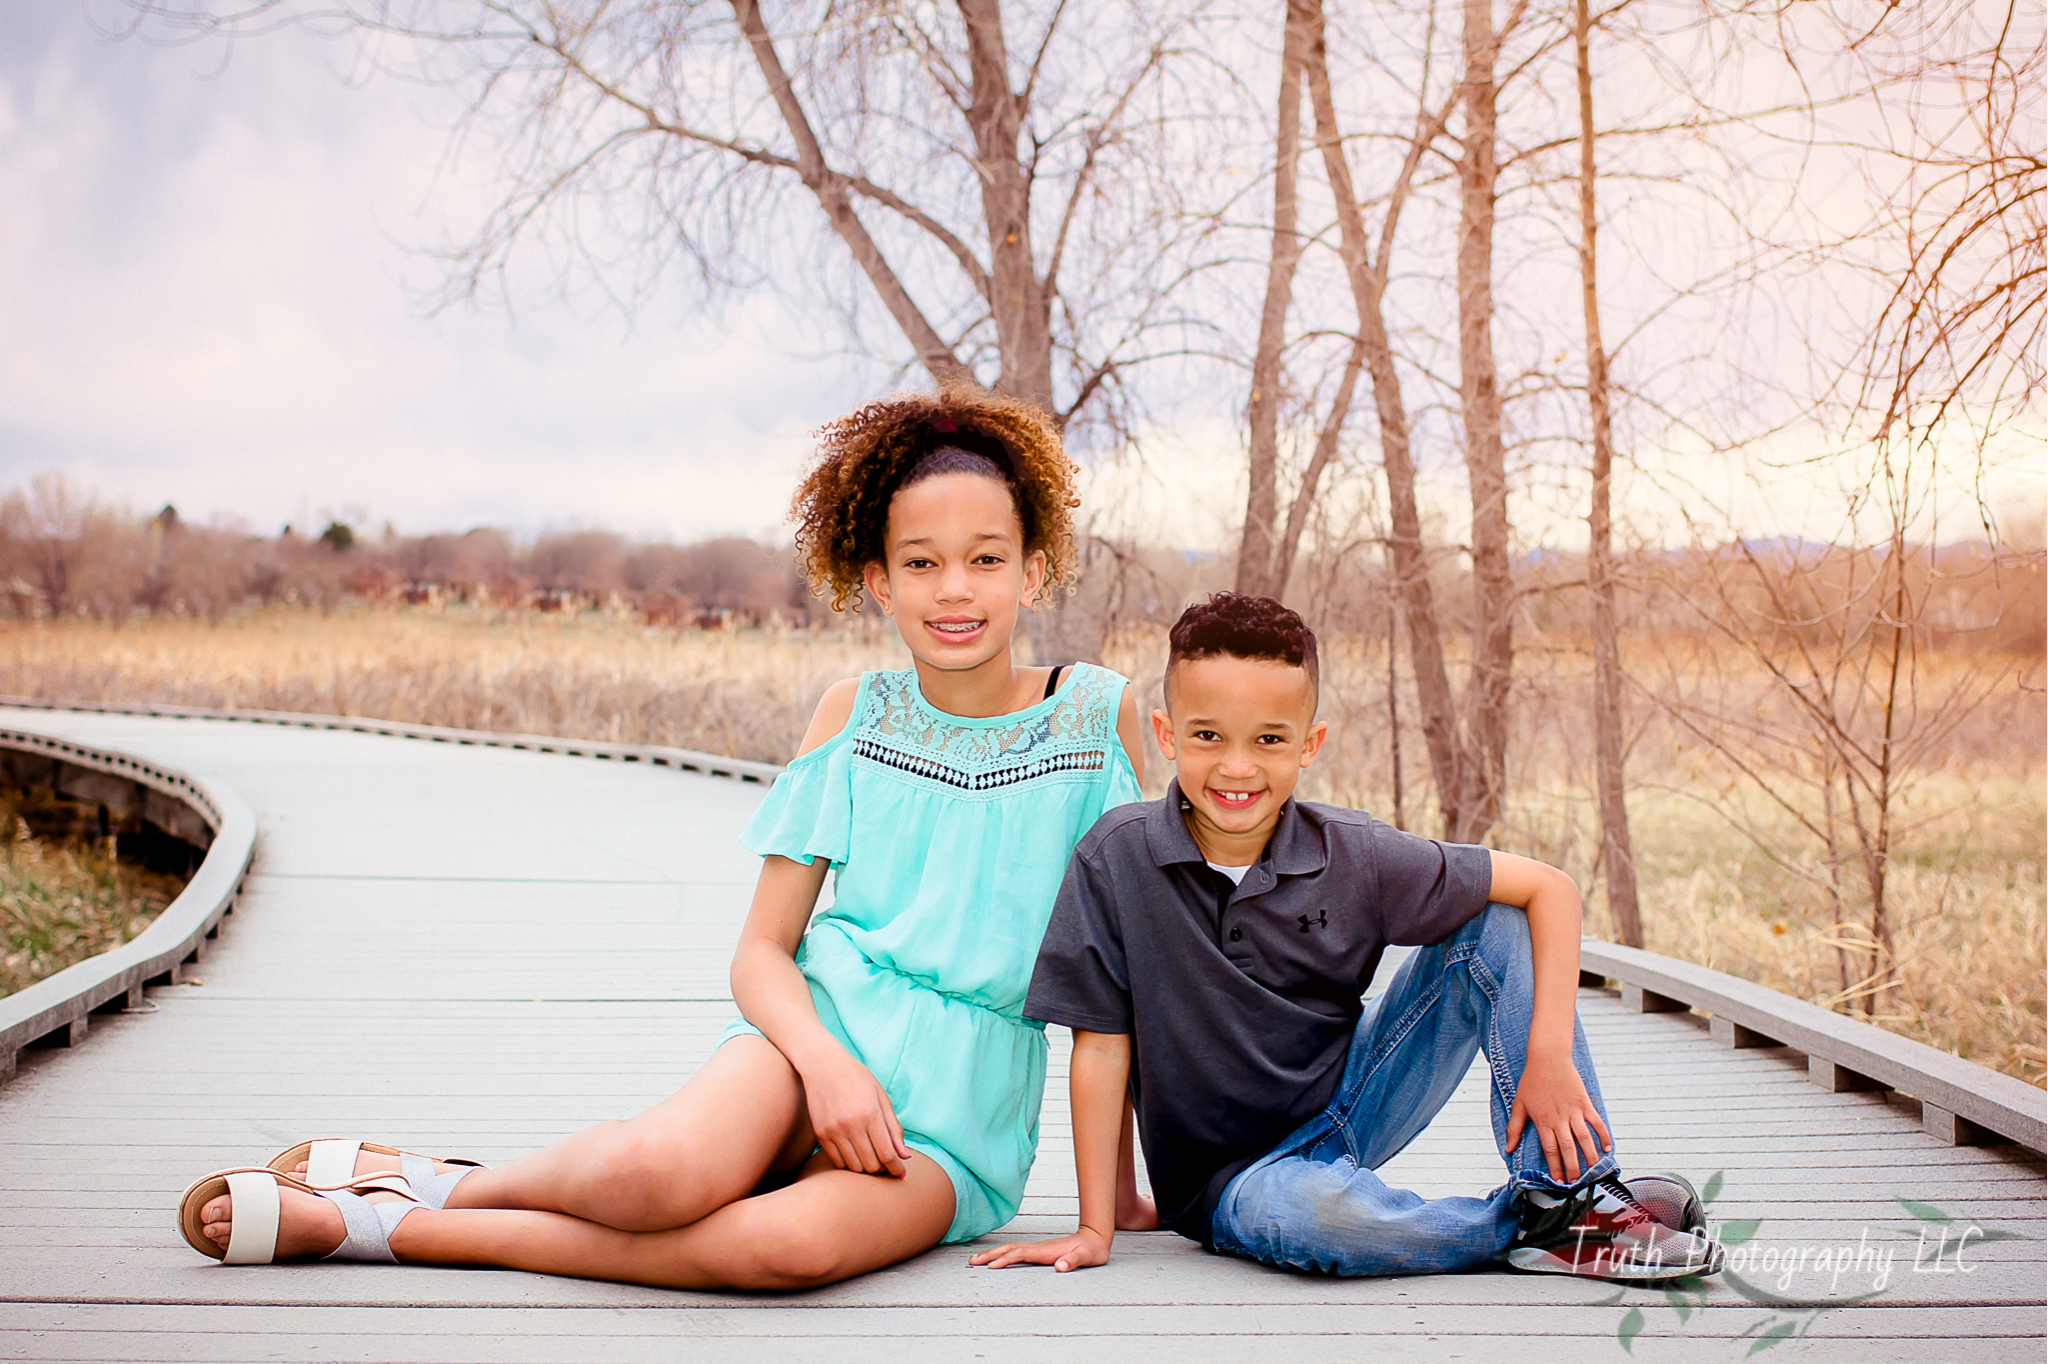 Truth-Photography-Thornton-kids-photography.jpg